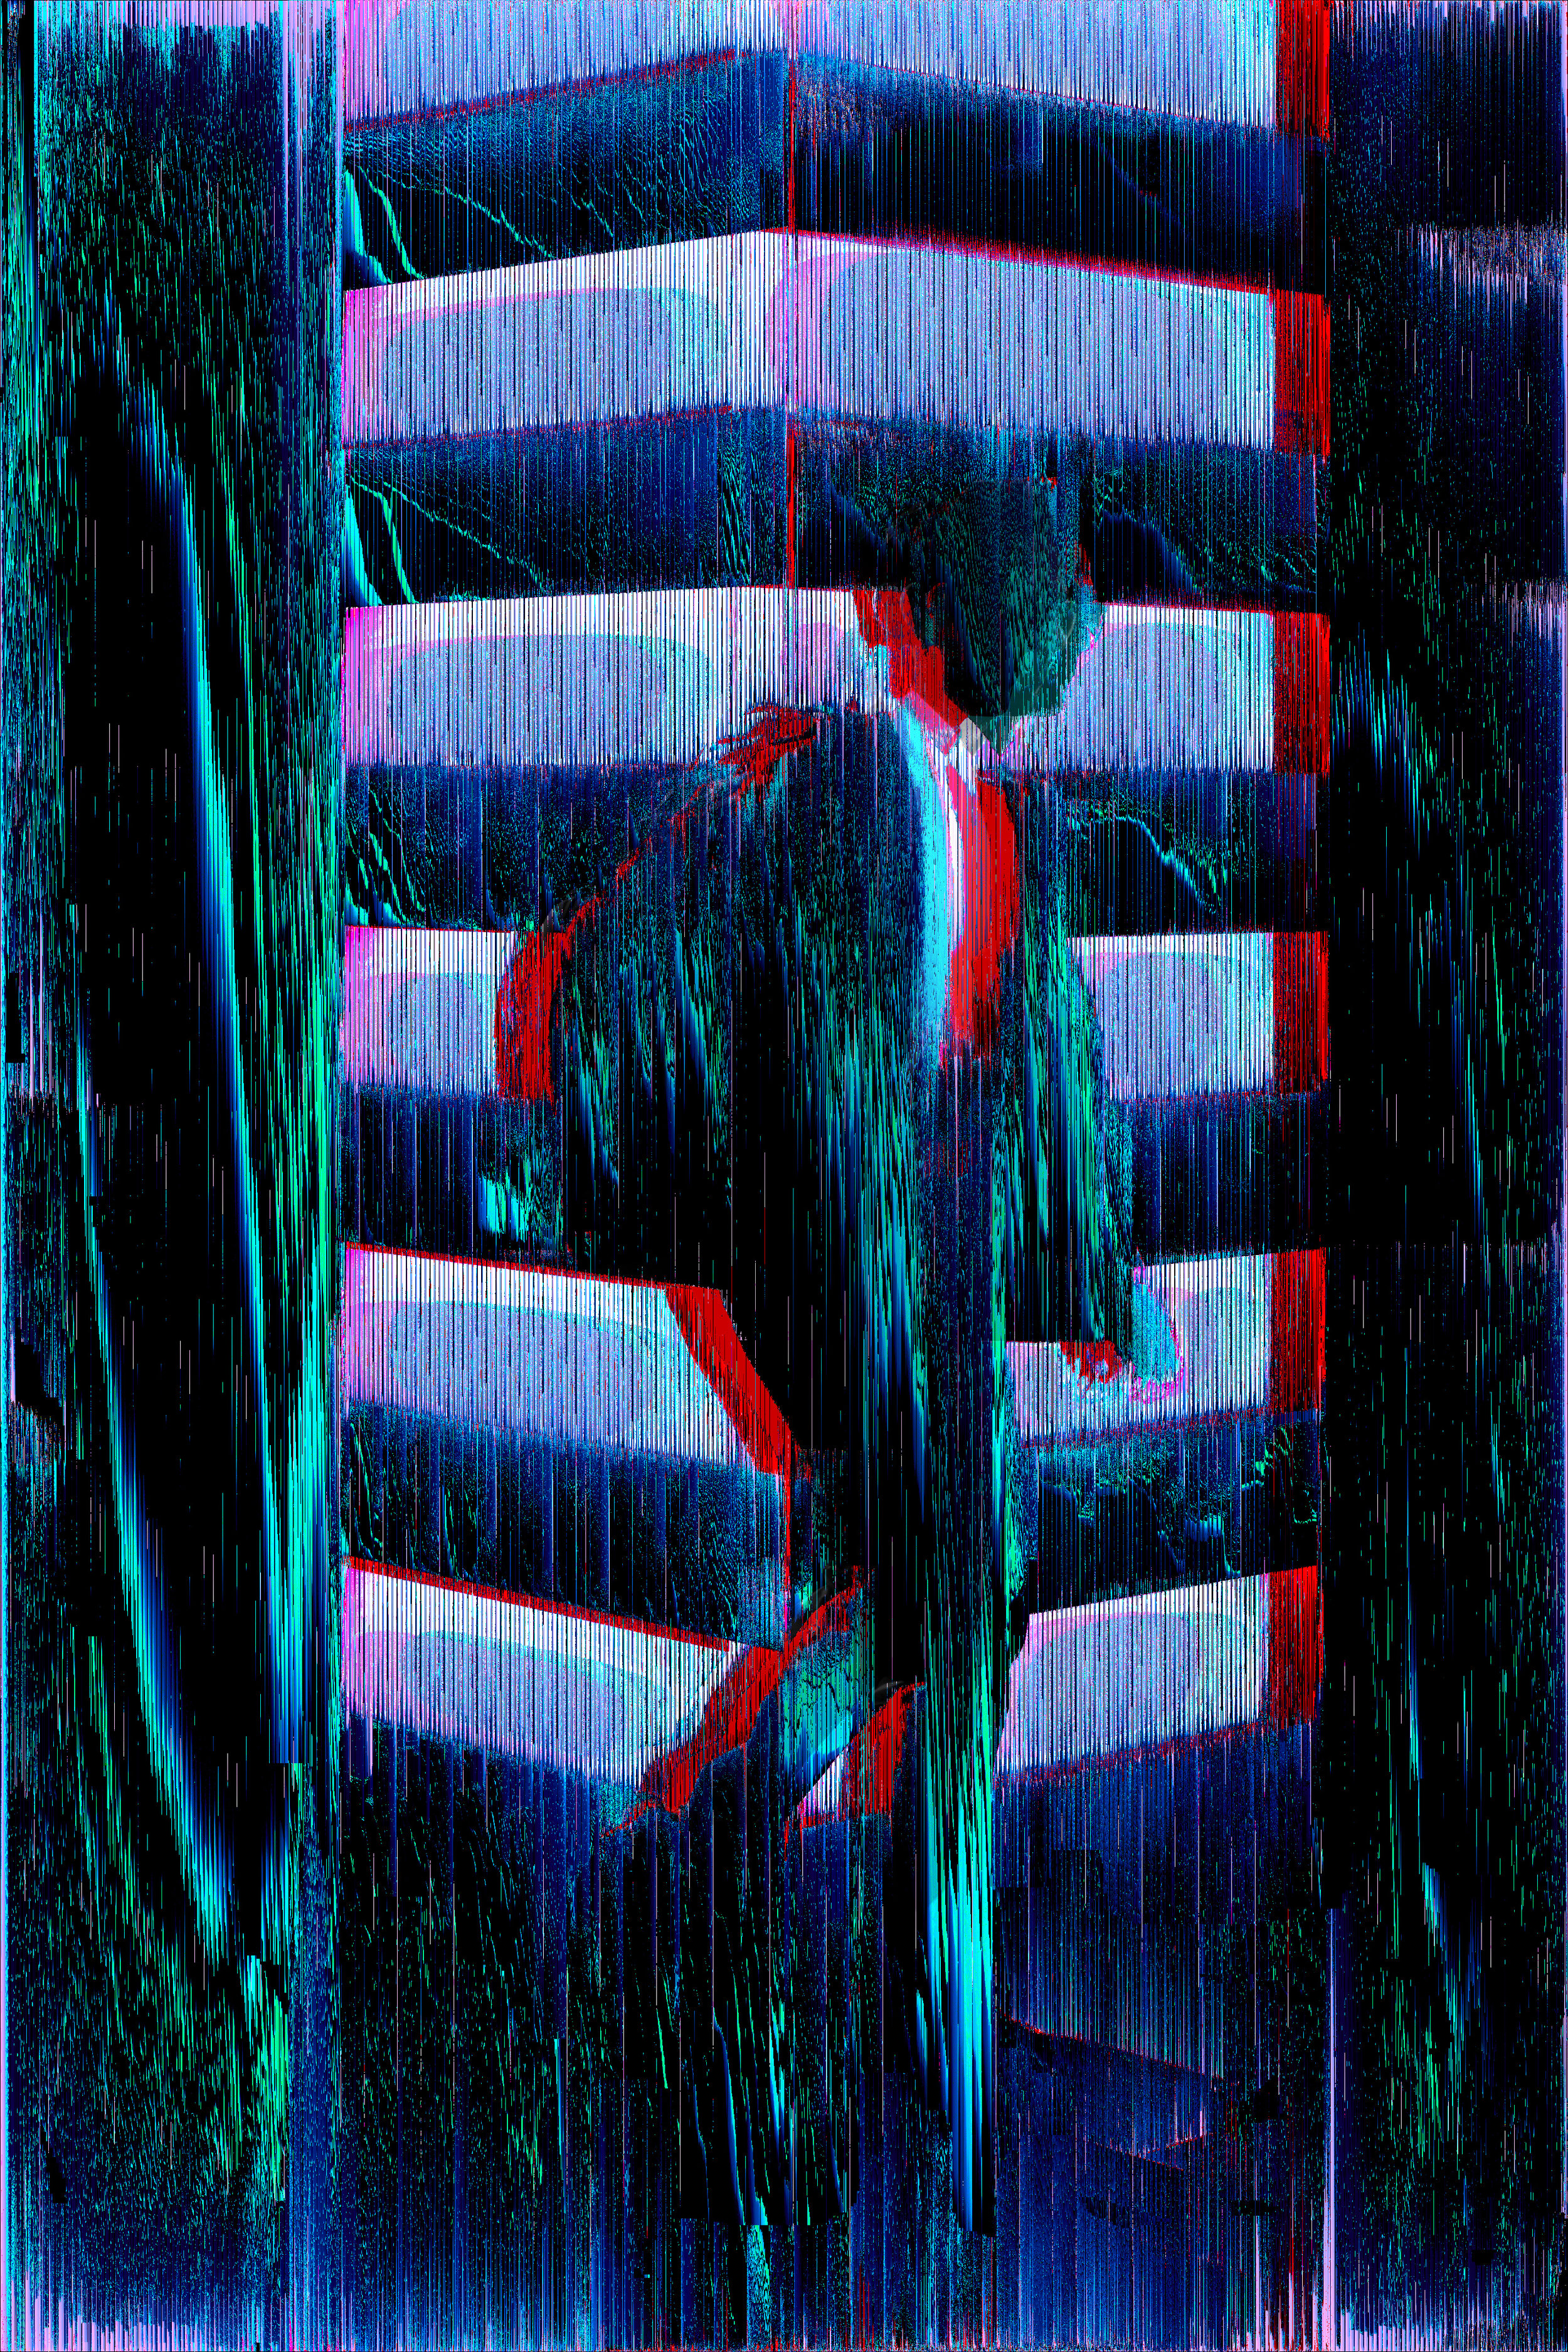 anaglych_21